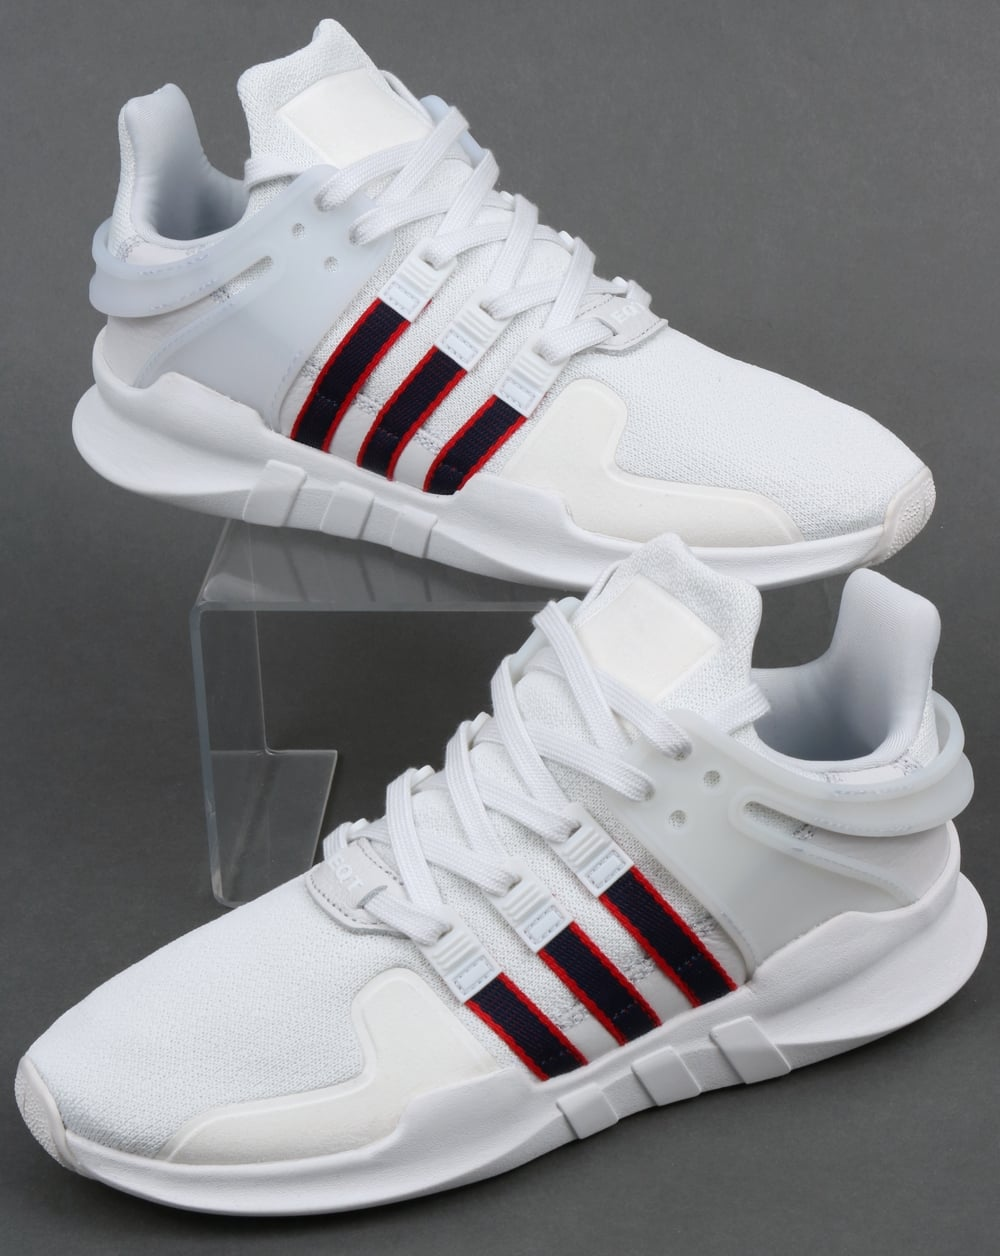 Adidas EQT Support ADV Trainers Crystal White/Navy/Scarlet